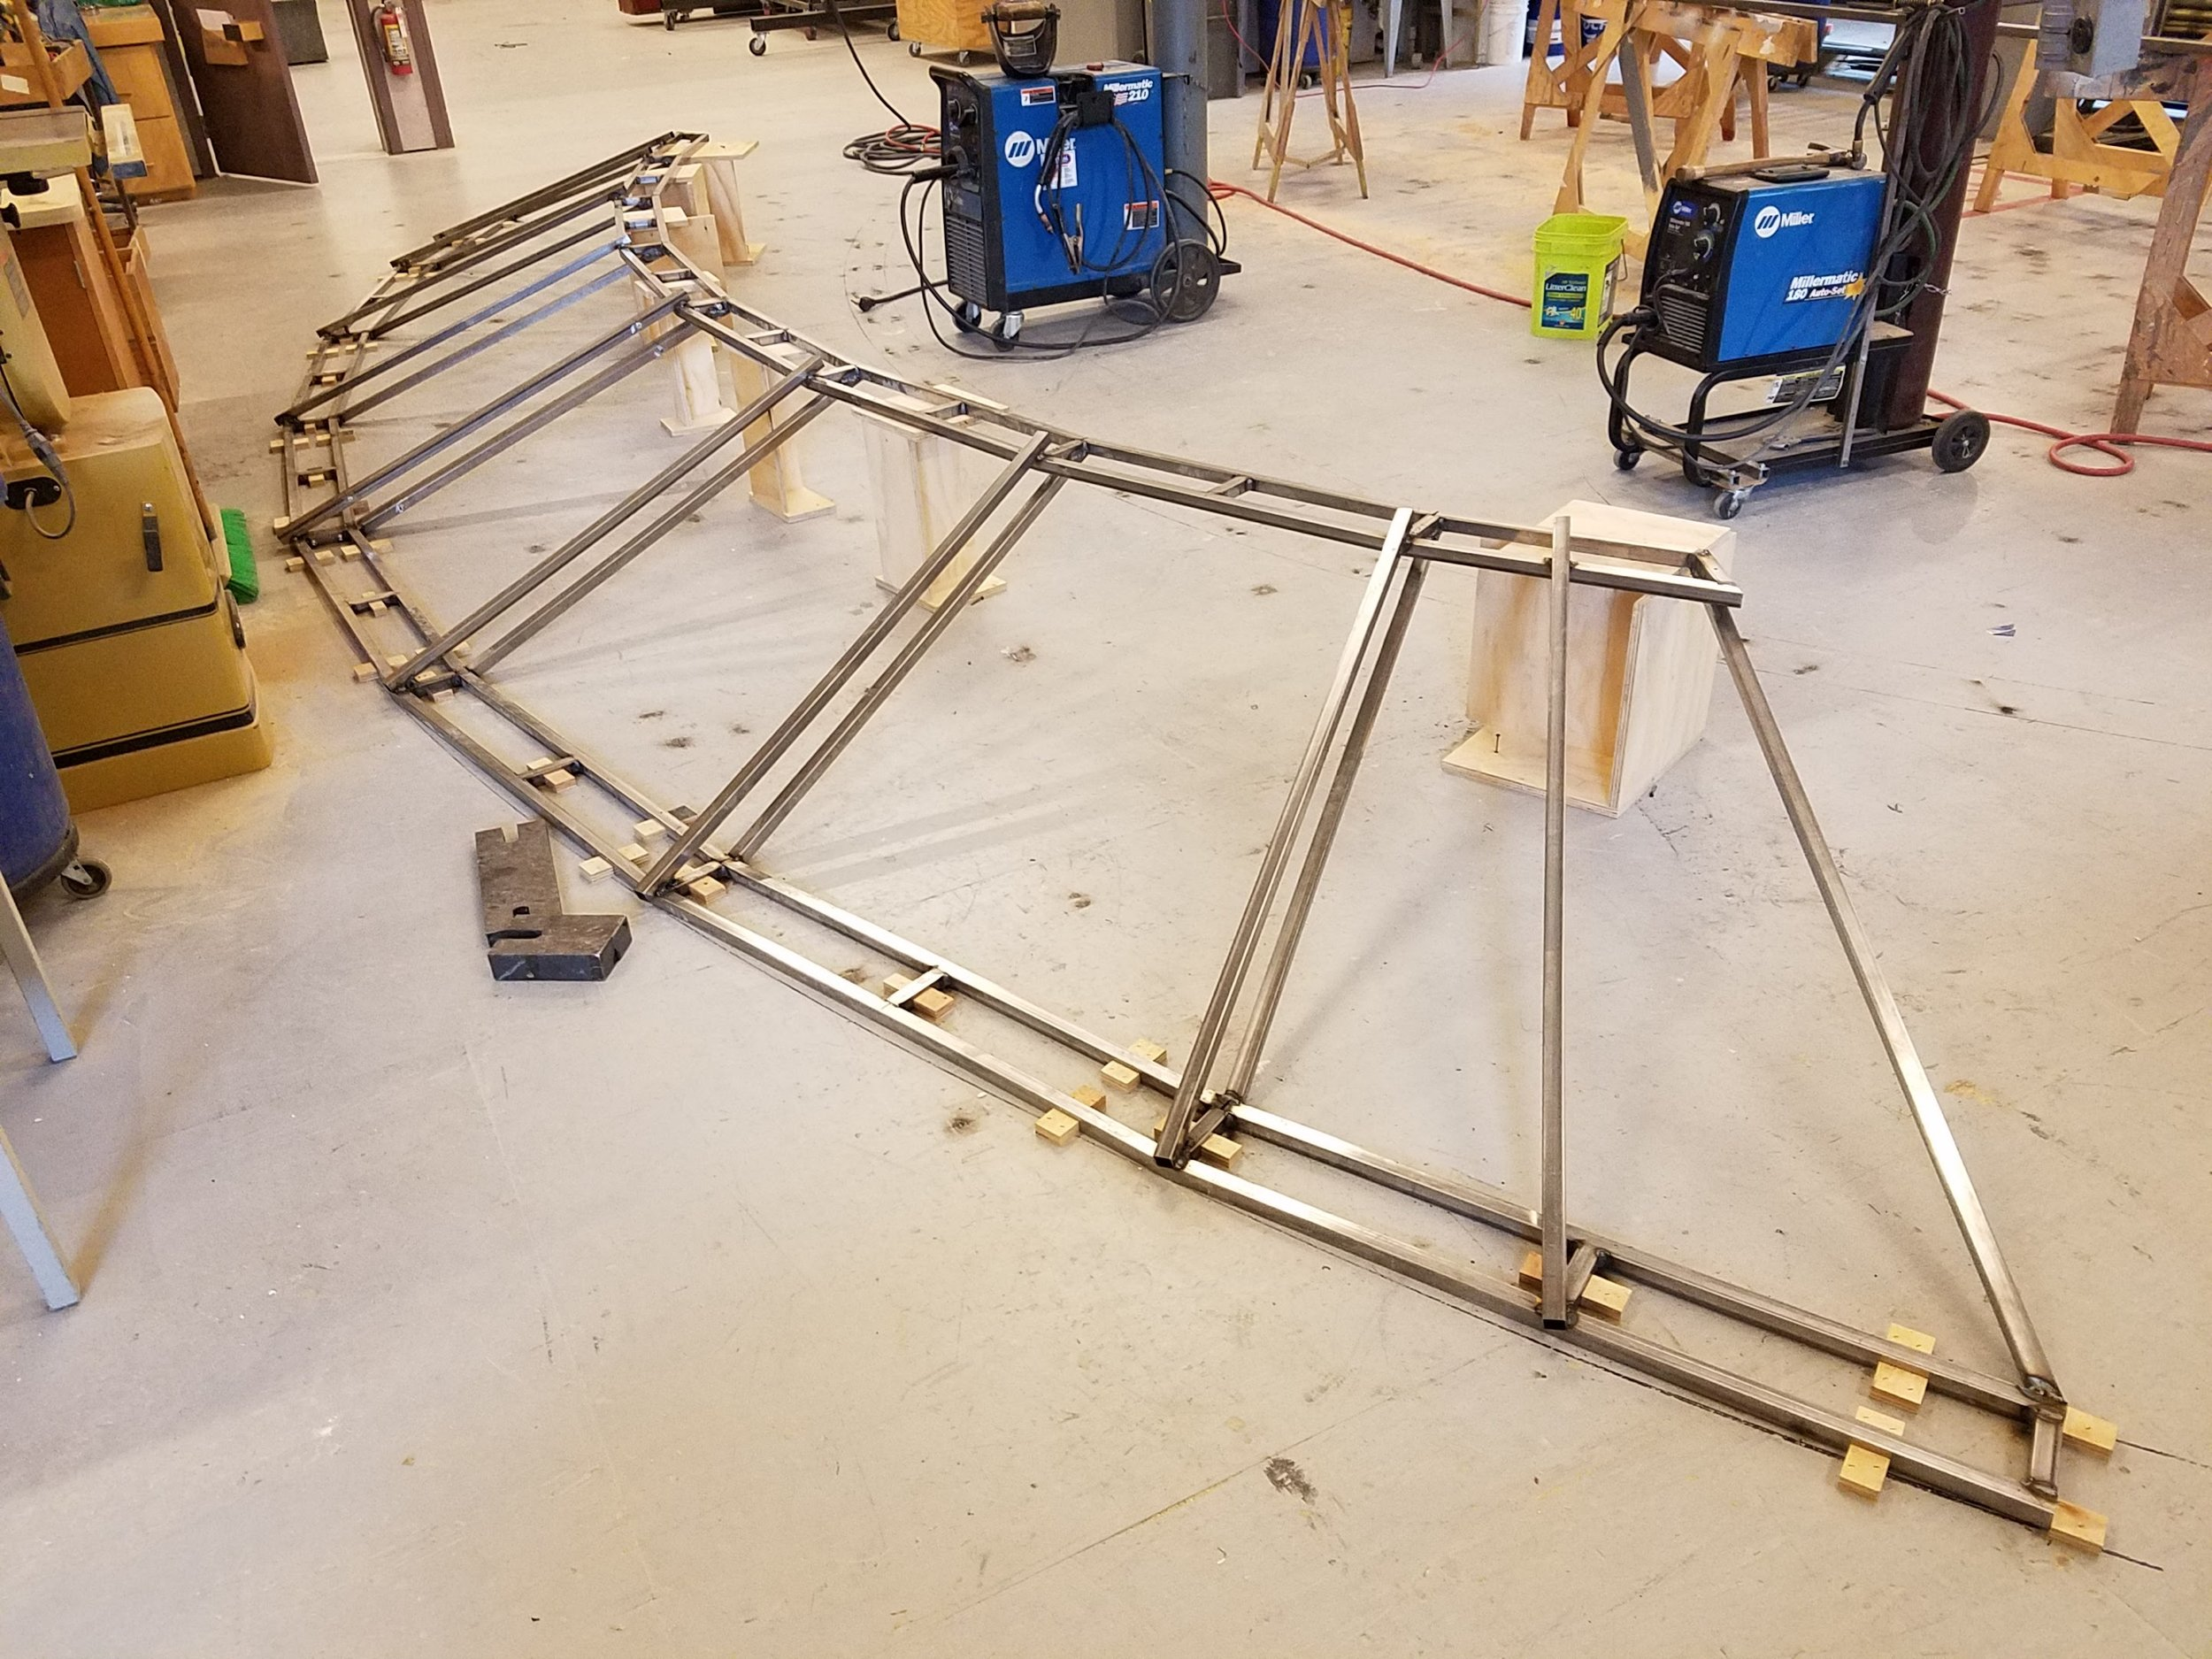 Assembling both trusses into one archway.